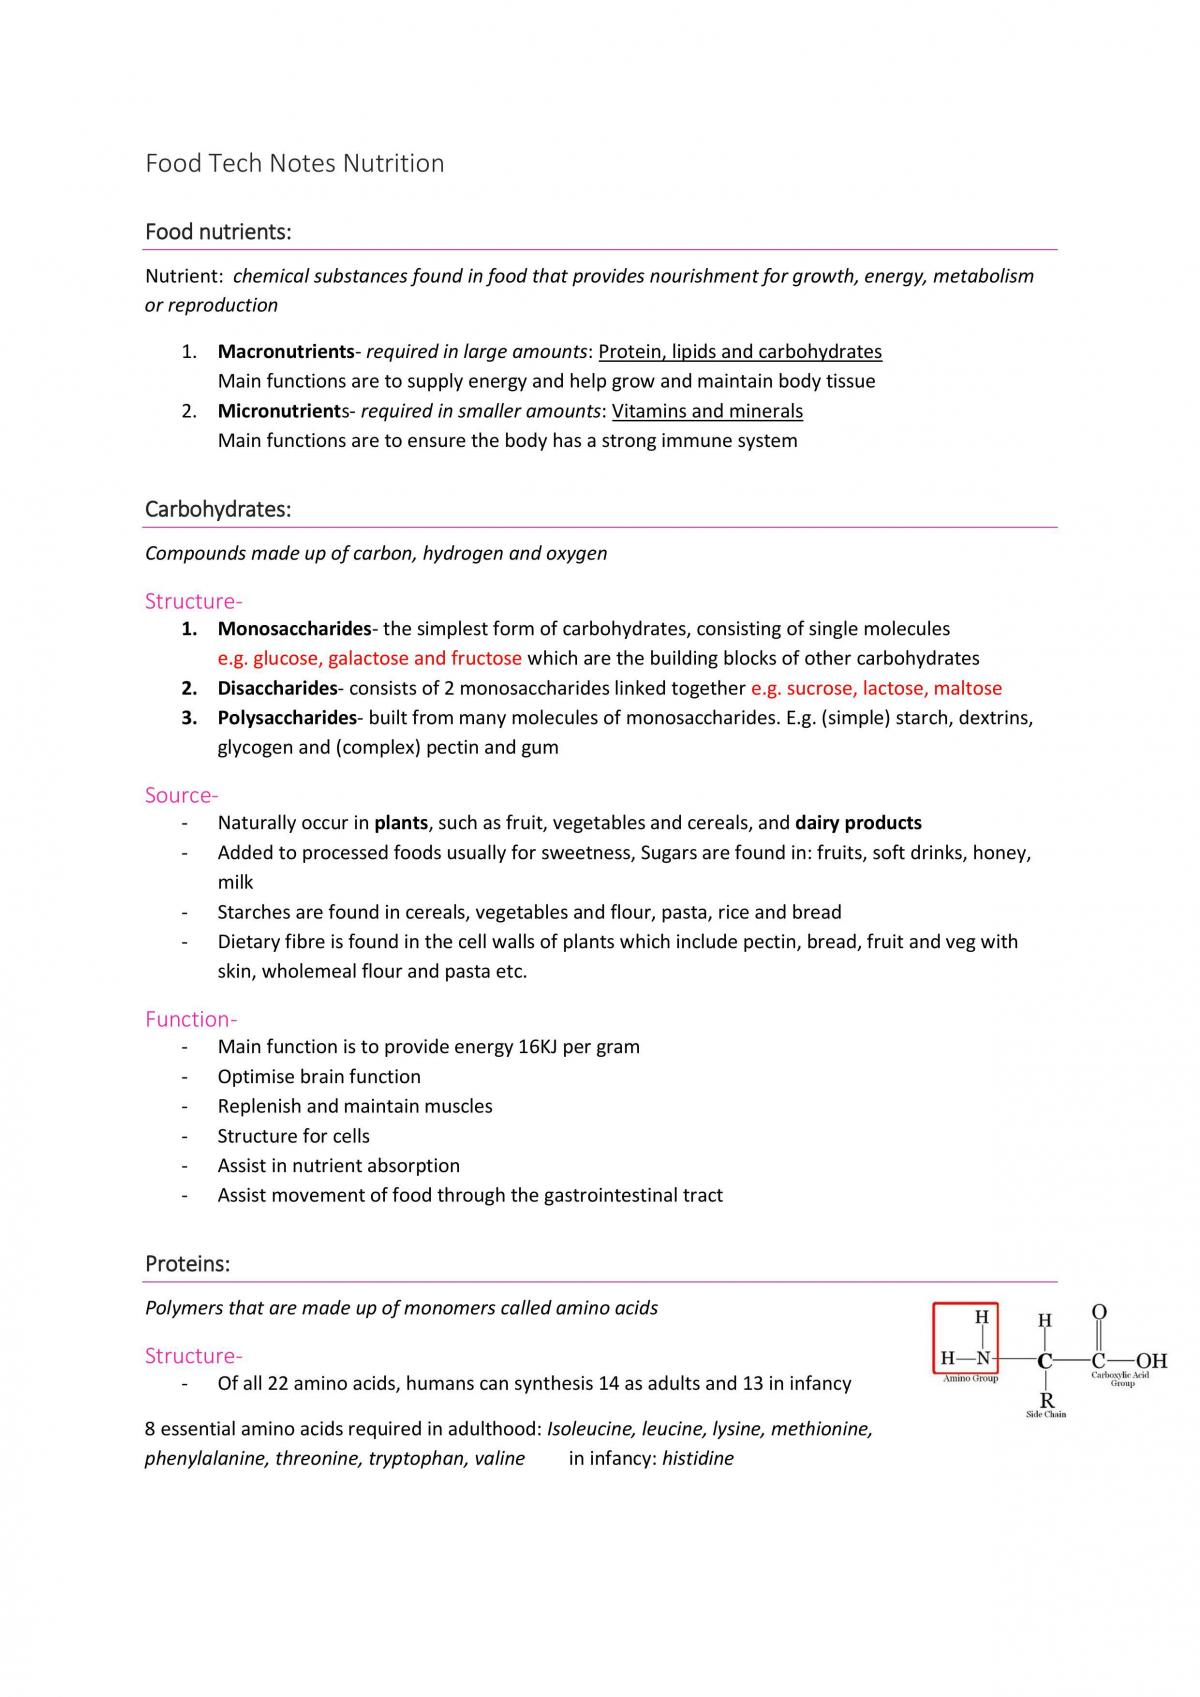 Nutrition study notes - Page 1